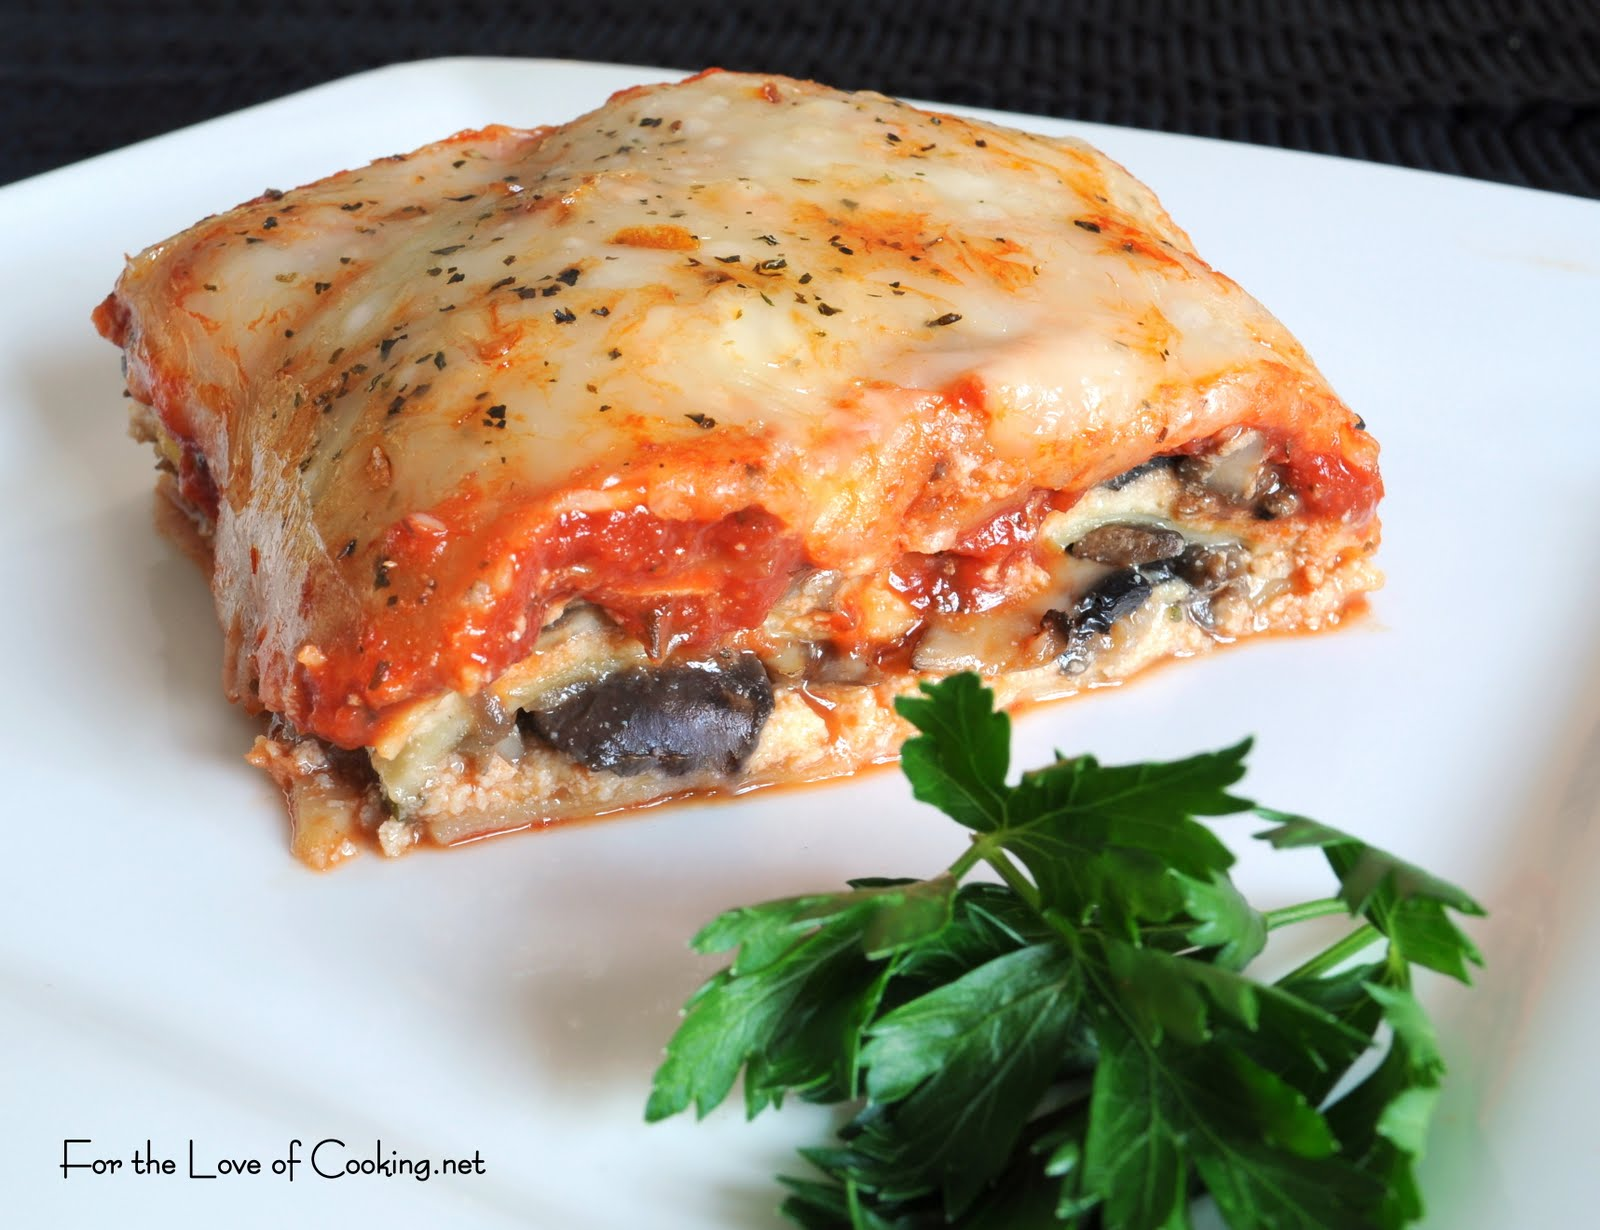 Mushroom and Spinach Lasagna For the Love of Cooking